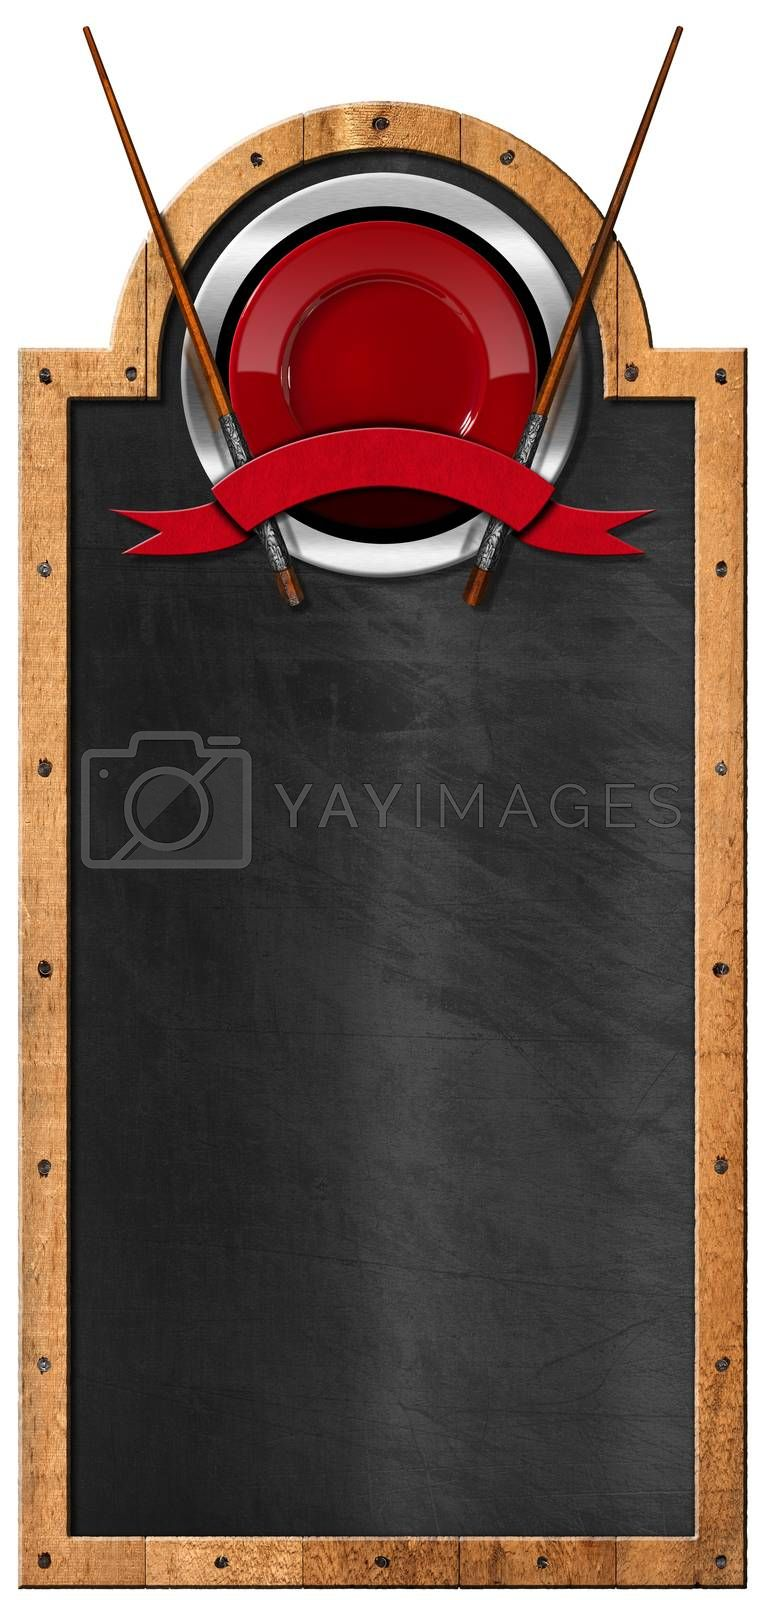 Empty blackboard with wooden frame and symbol with red plate, wooden chopsticks and empty red ribbon. Template for an Asian Menu